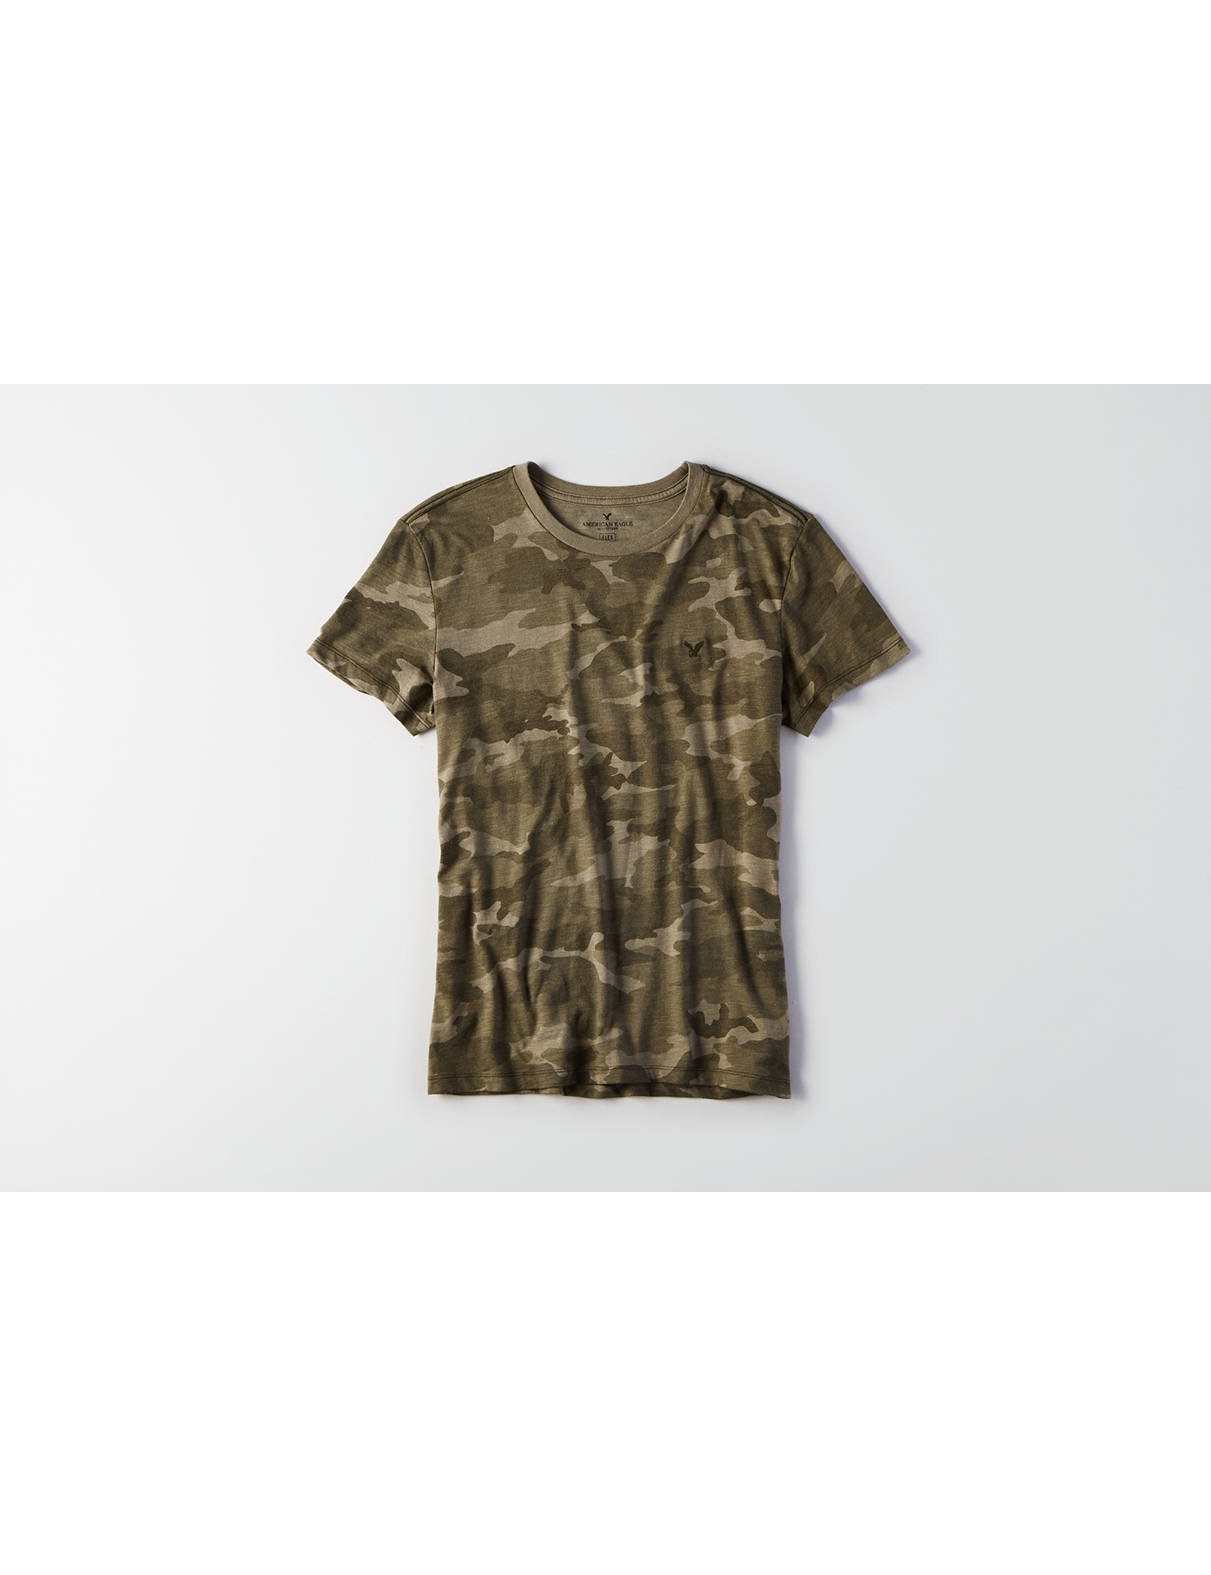 Black t shirt v shape - Display Product Reviews For Aeo Camo T Shirt